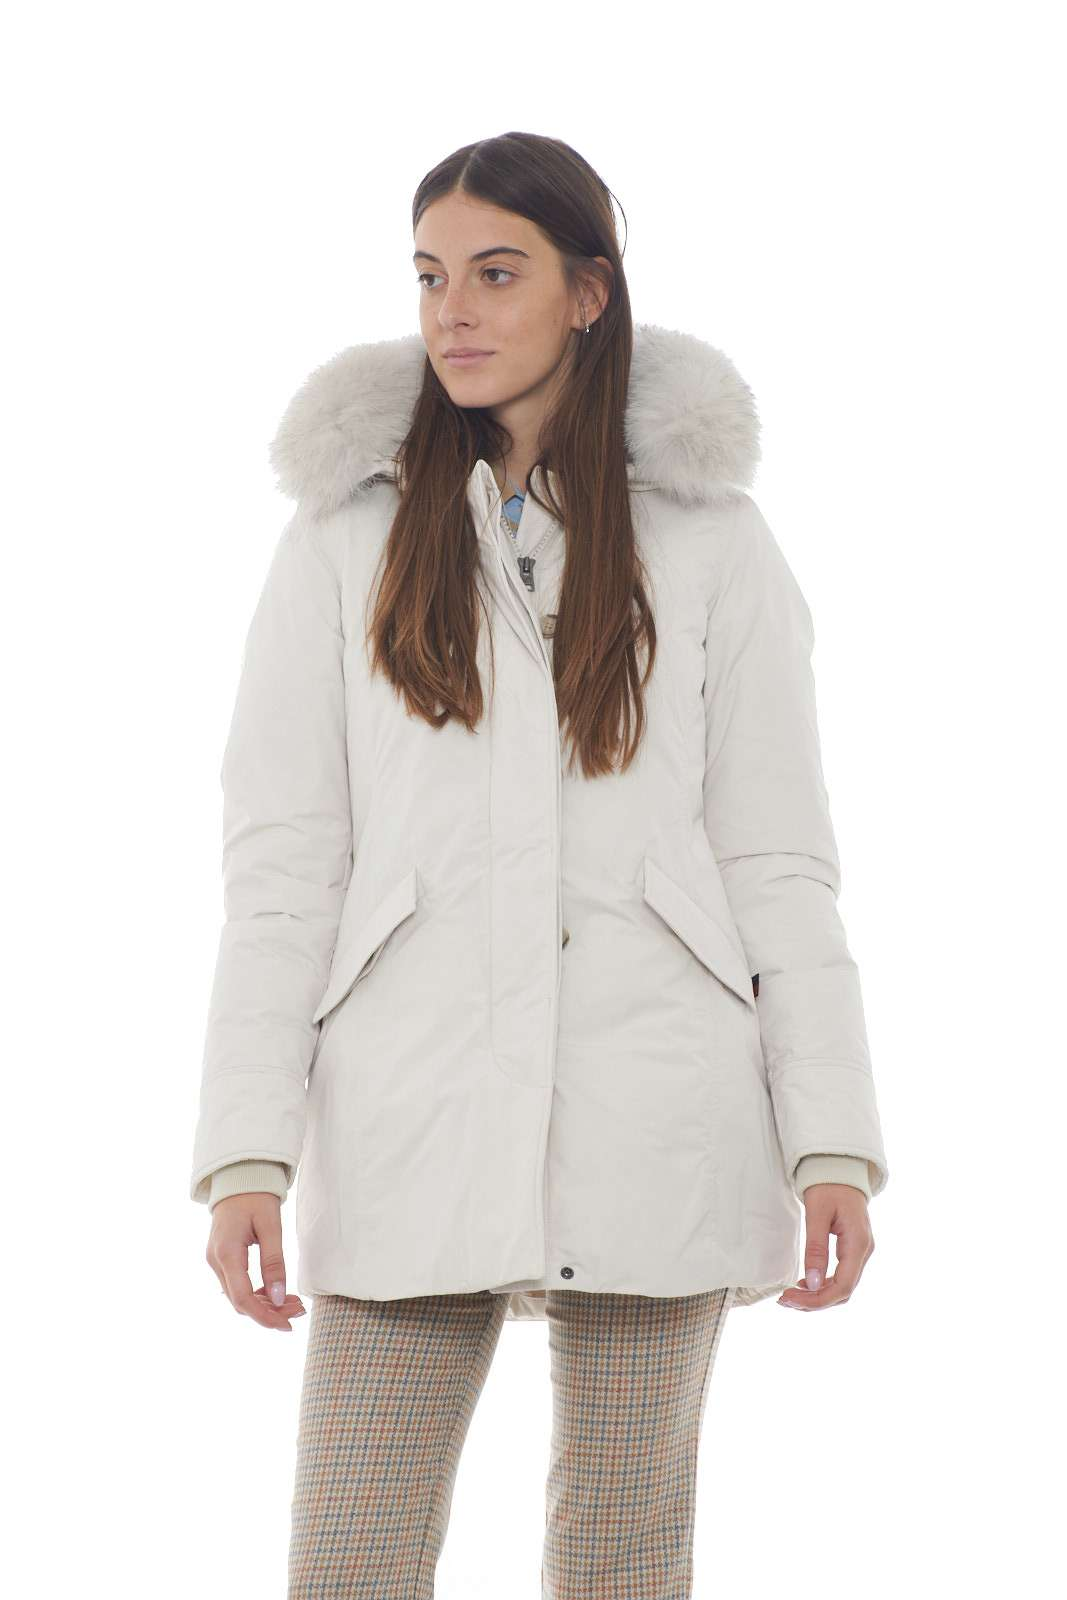 https://www.parmax.com/media/catalog/product/a/i/AI-outlet_parmax-parka-donna-Woolrich-wwcps2834-A.jpg